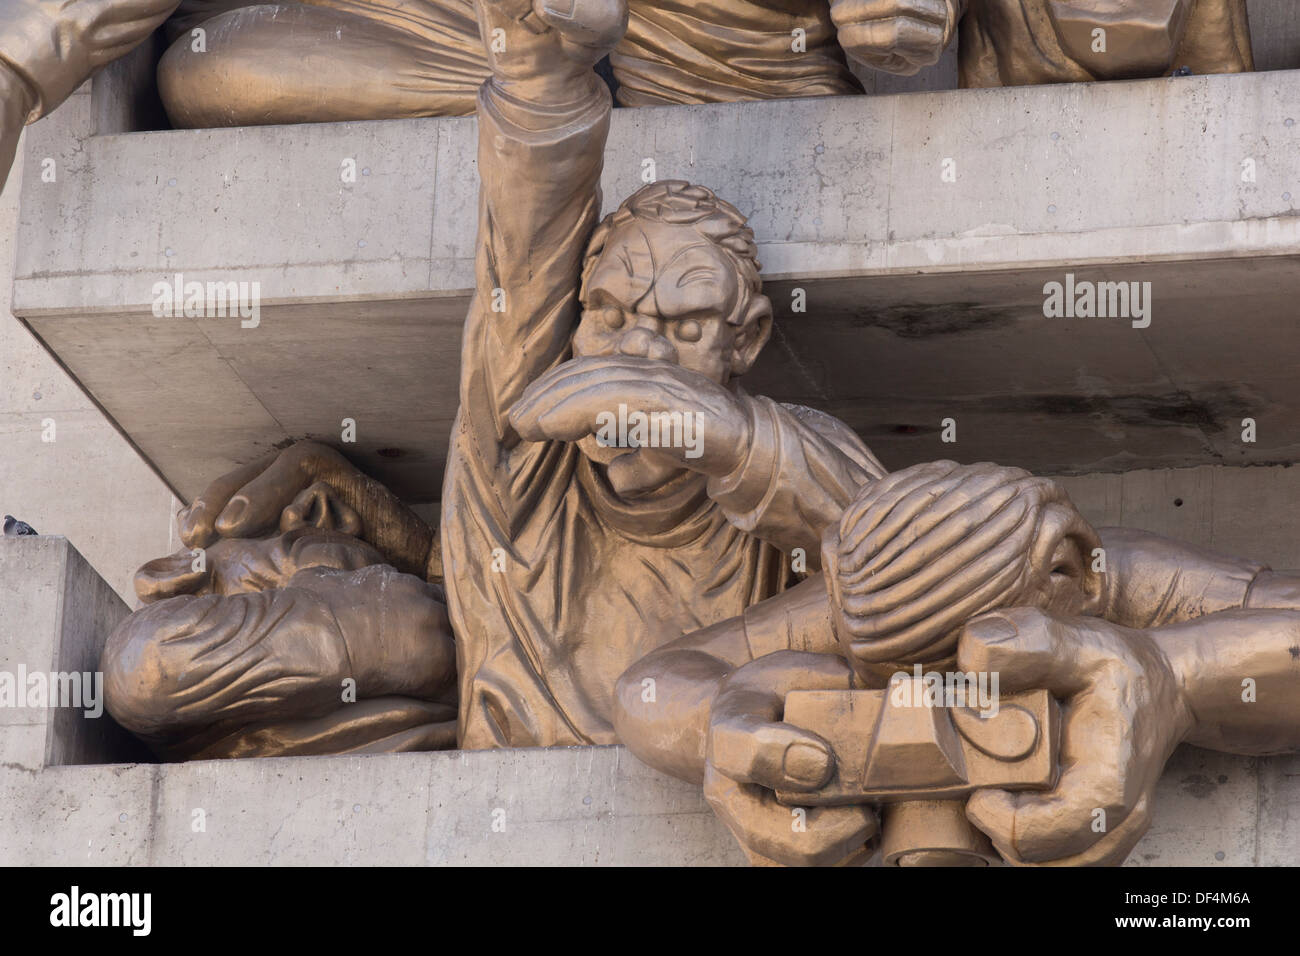 The Audience by Michael Snow. Baseball fan gargoyles at the Rogers Centre (formerly The Skydome) in Toronto, Ontario. - Stock Image